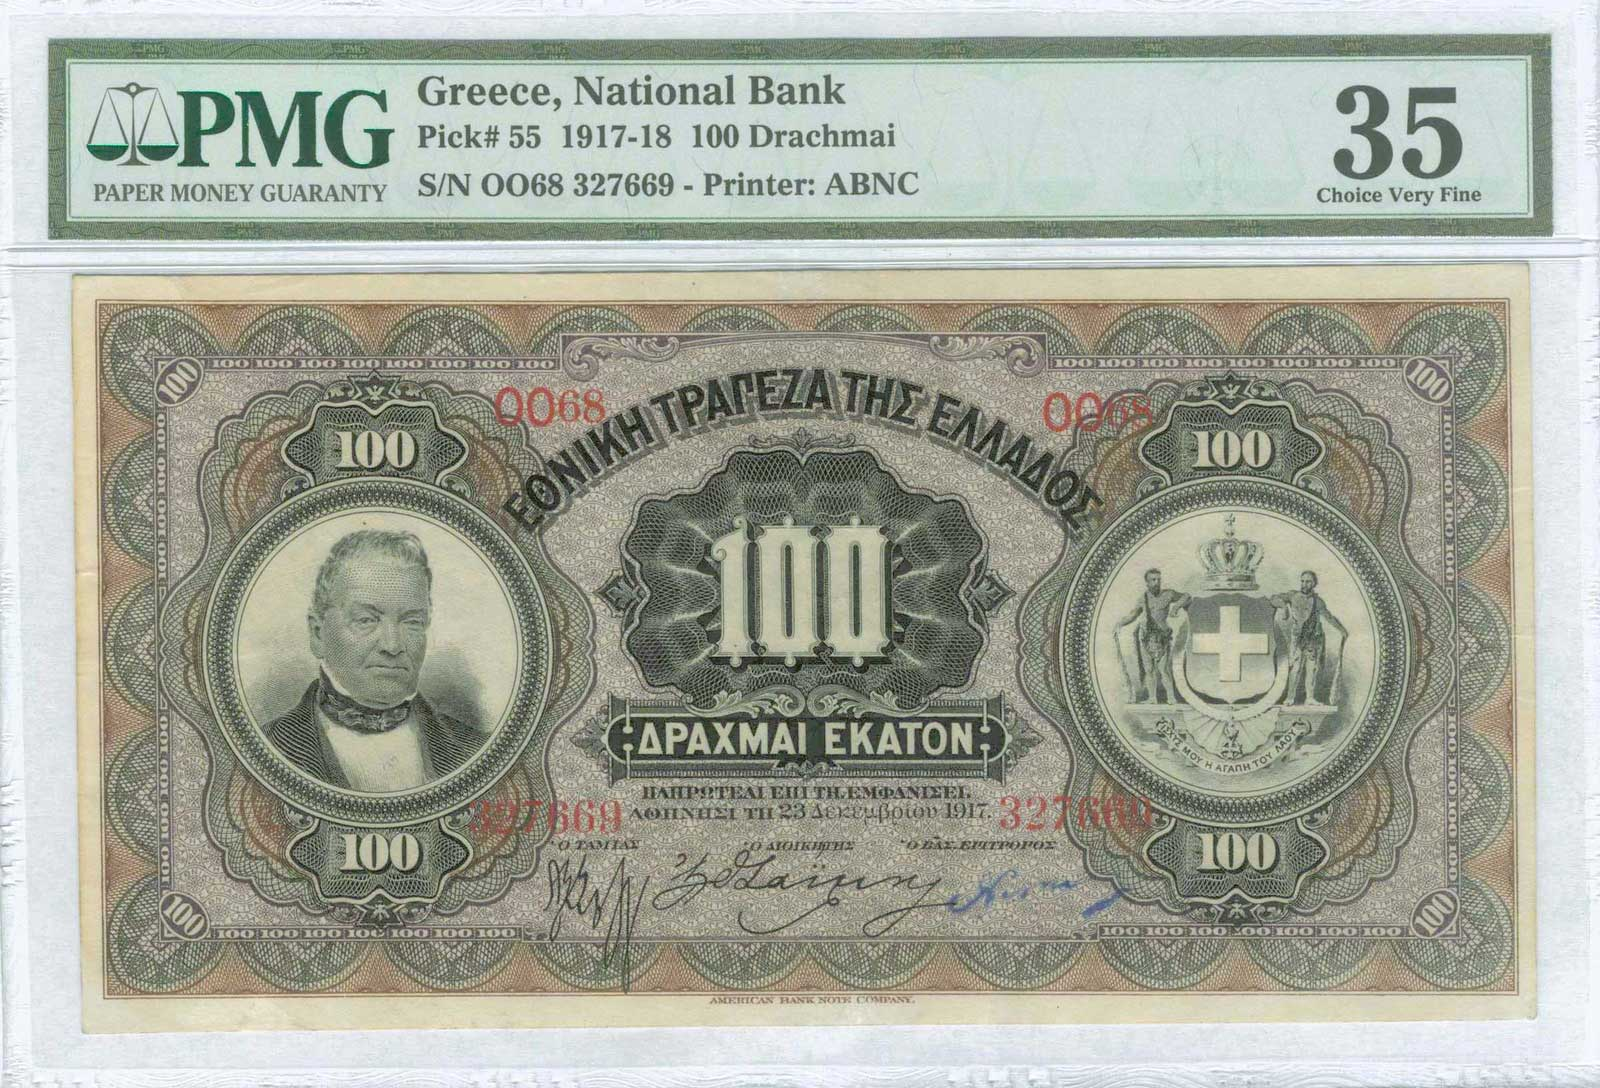 Lot 9267 - GREECE-  PAPER MONEY - BANKNOTES National Bank of Greece -  A. Karamitsos Public & LIVE Bid Auction 610 Coins, Medals & Banknotes